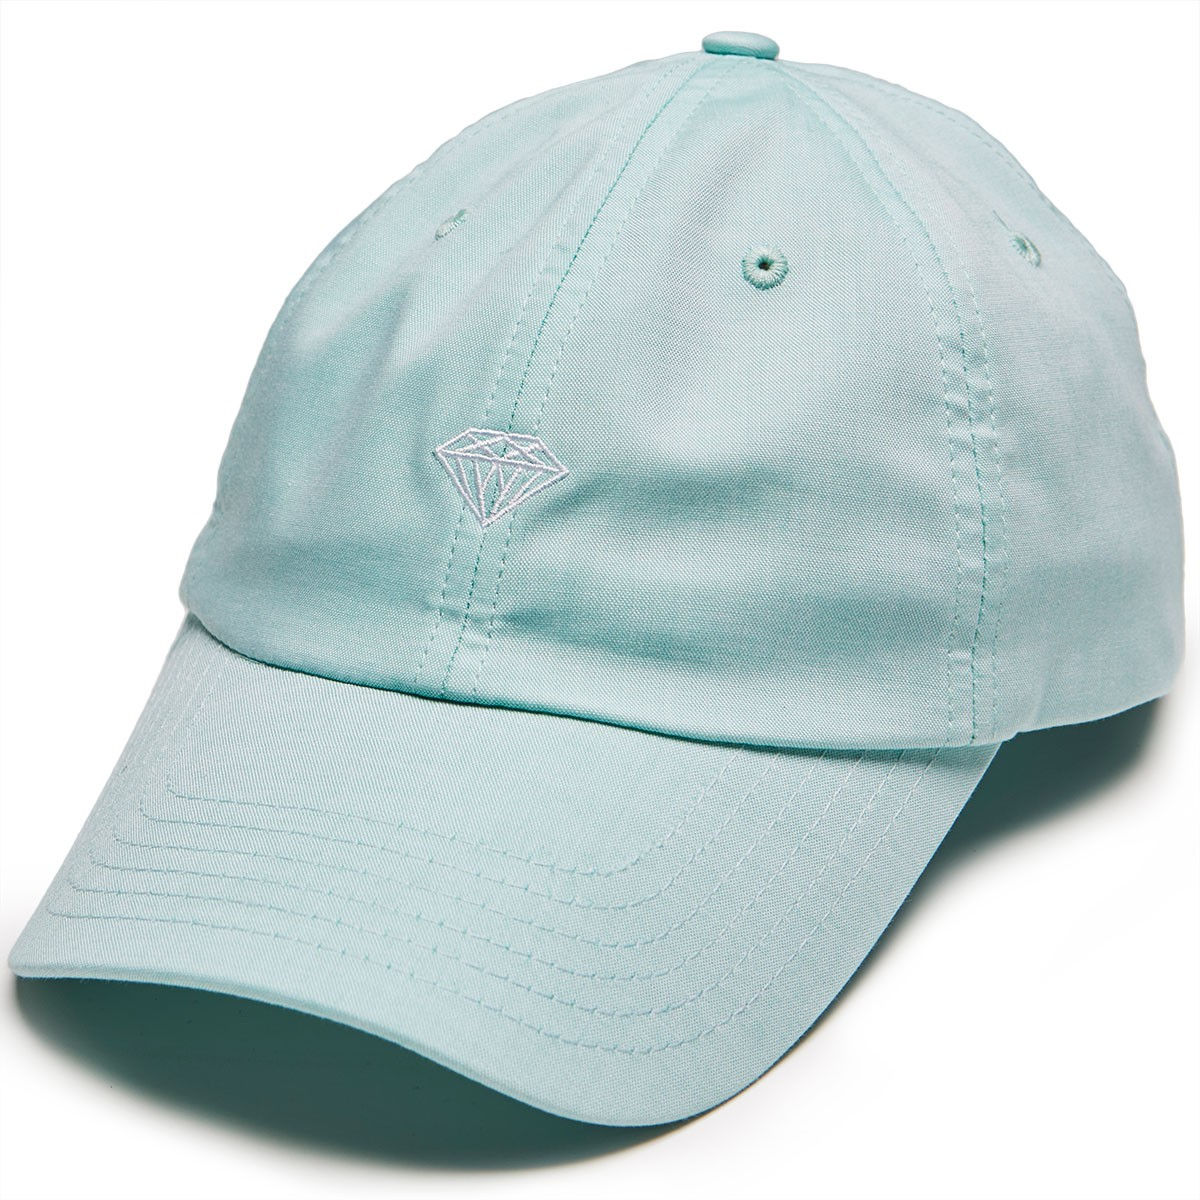 ... where to buy diamond supply co. micro brilliant sports trucker hat  diamond blue 6c4f6 c3cba 32bbed8dfd3